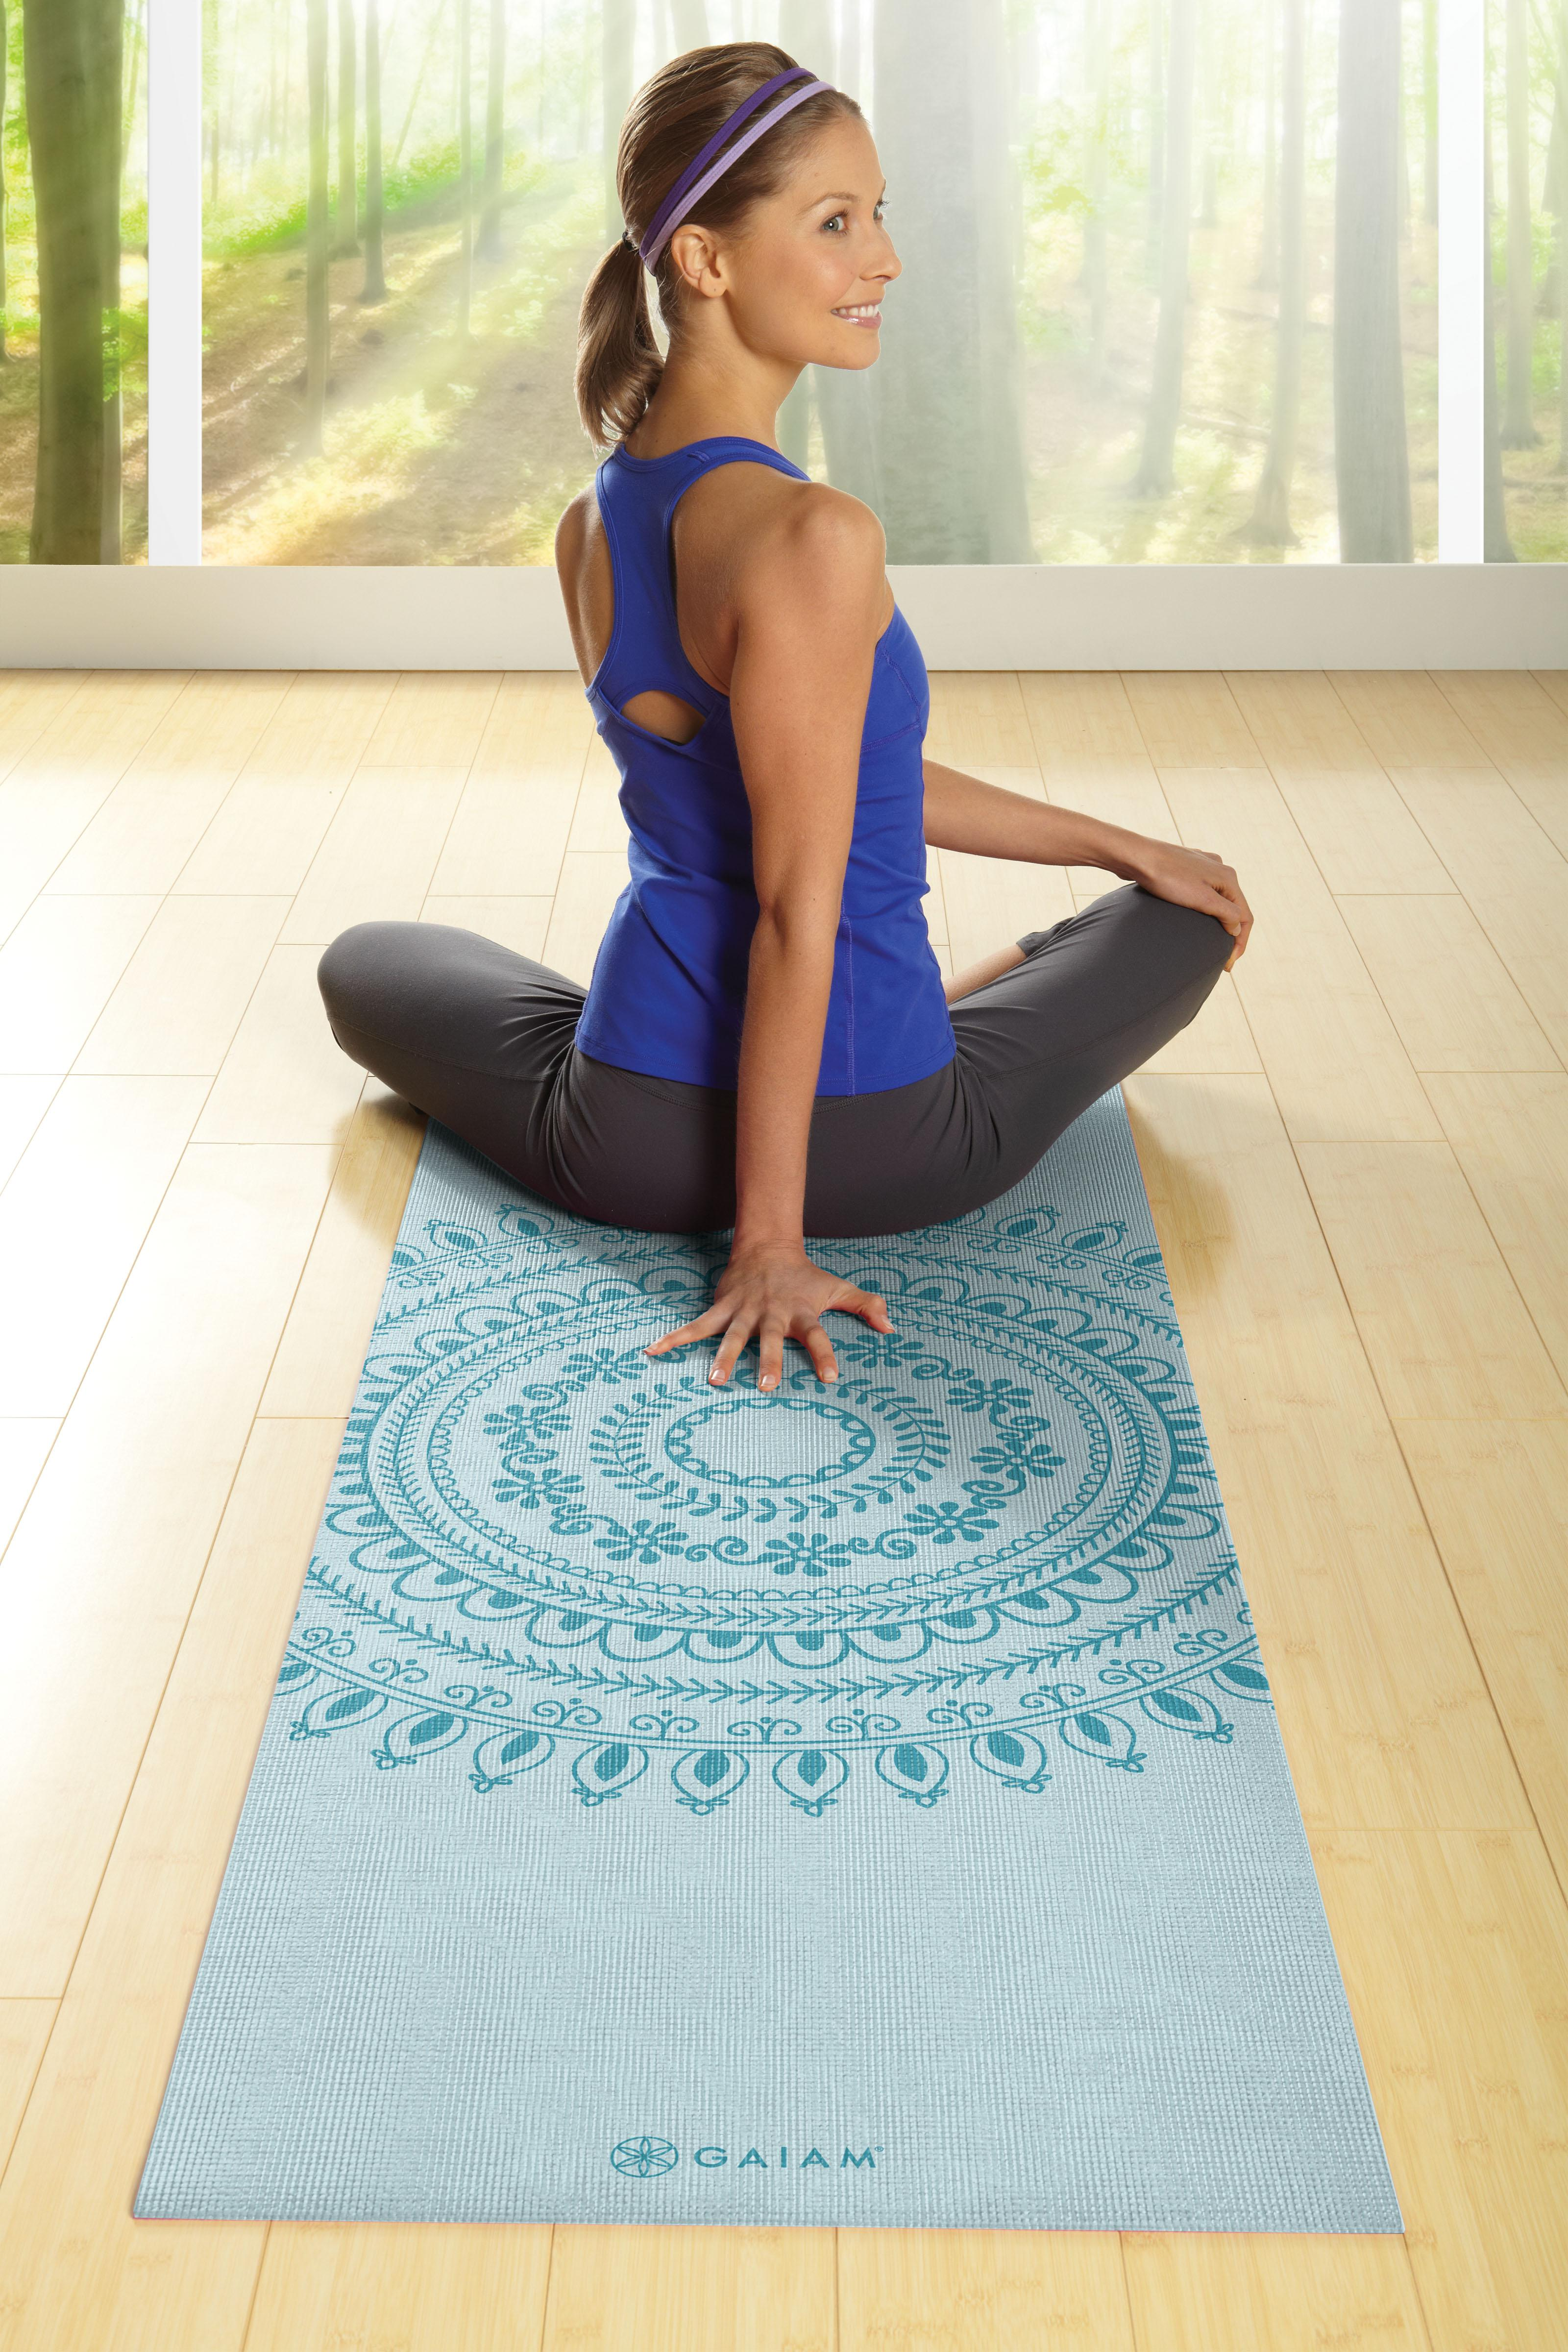 Amazon.com : Gaiam Print Premium Yoga Mats (5mm) : Sports